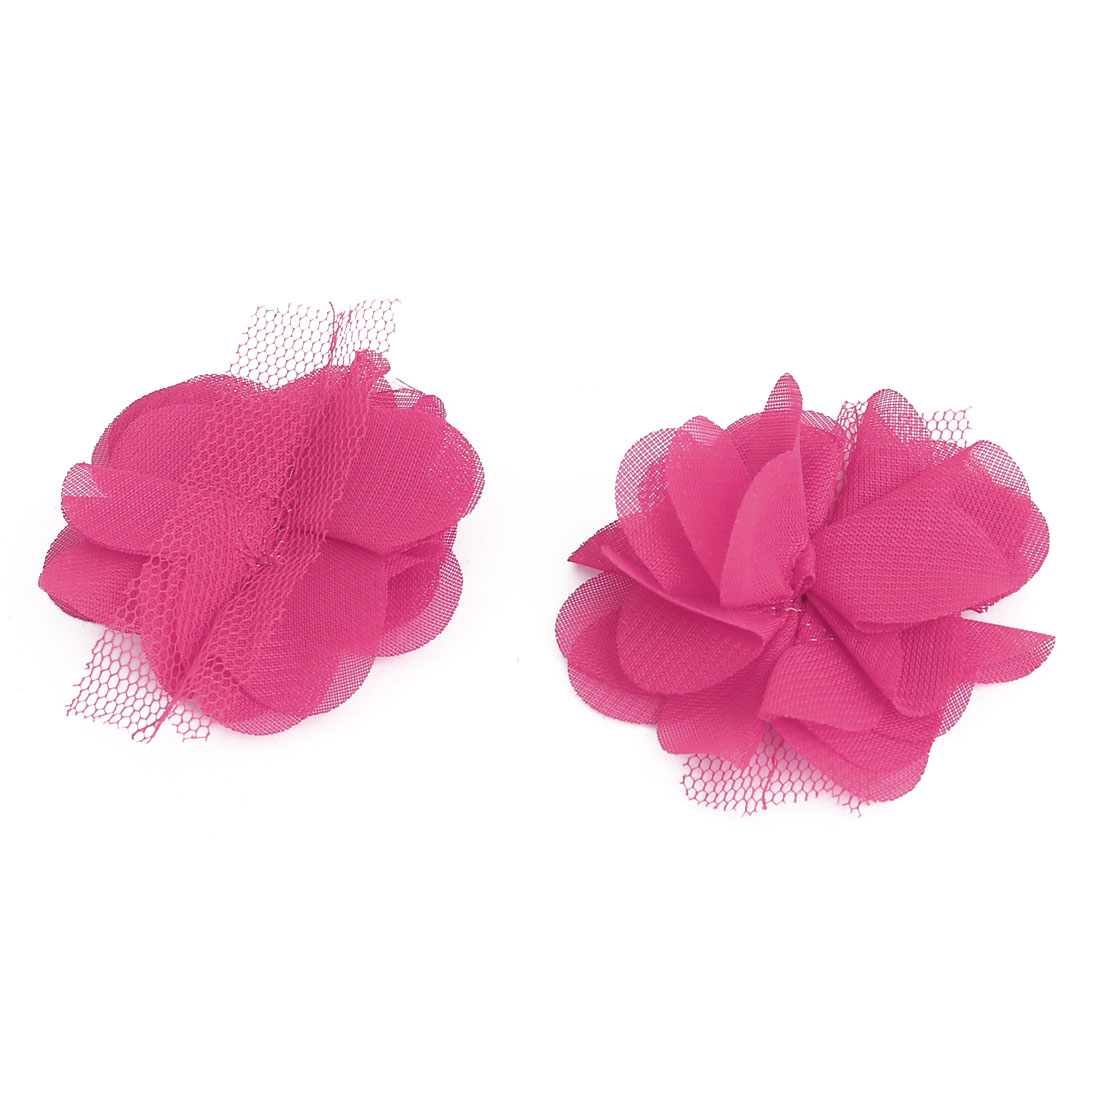 Household Clothing Fabric Artificial Handcraft Six Petals Flower Fuchsia 20 PCS - image 1 of 3